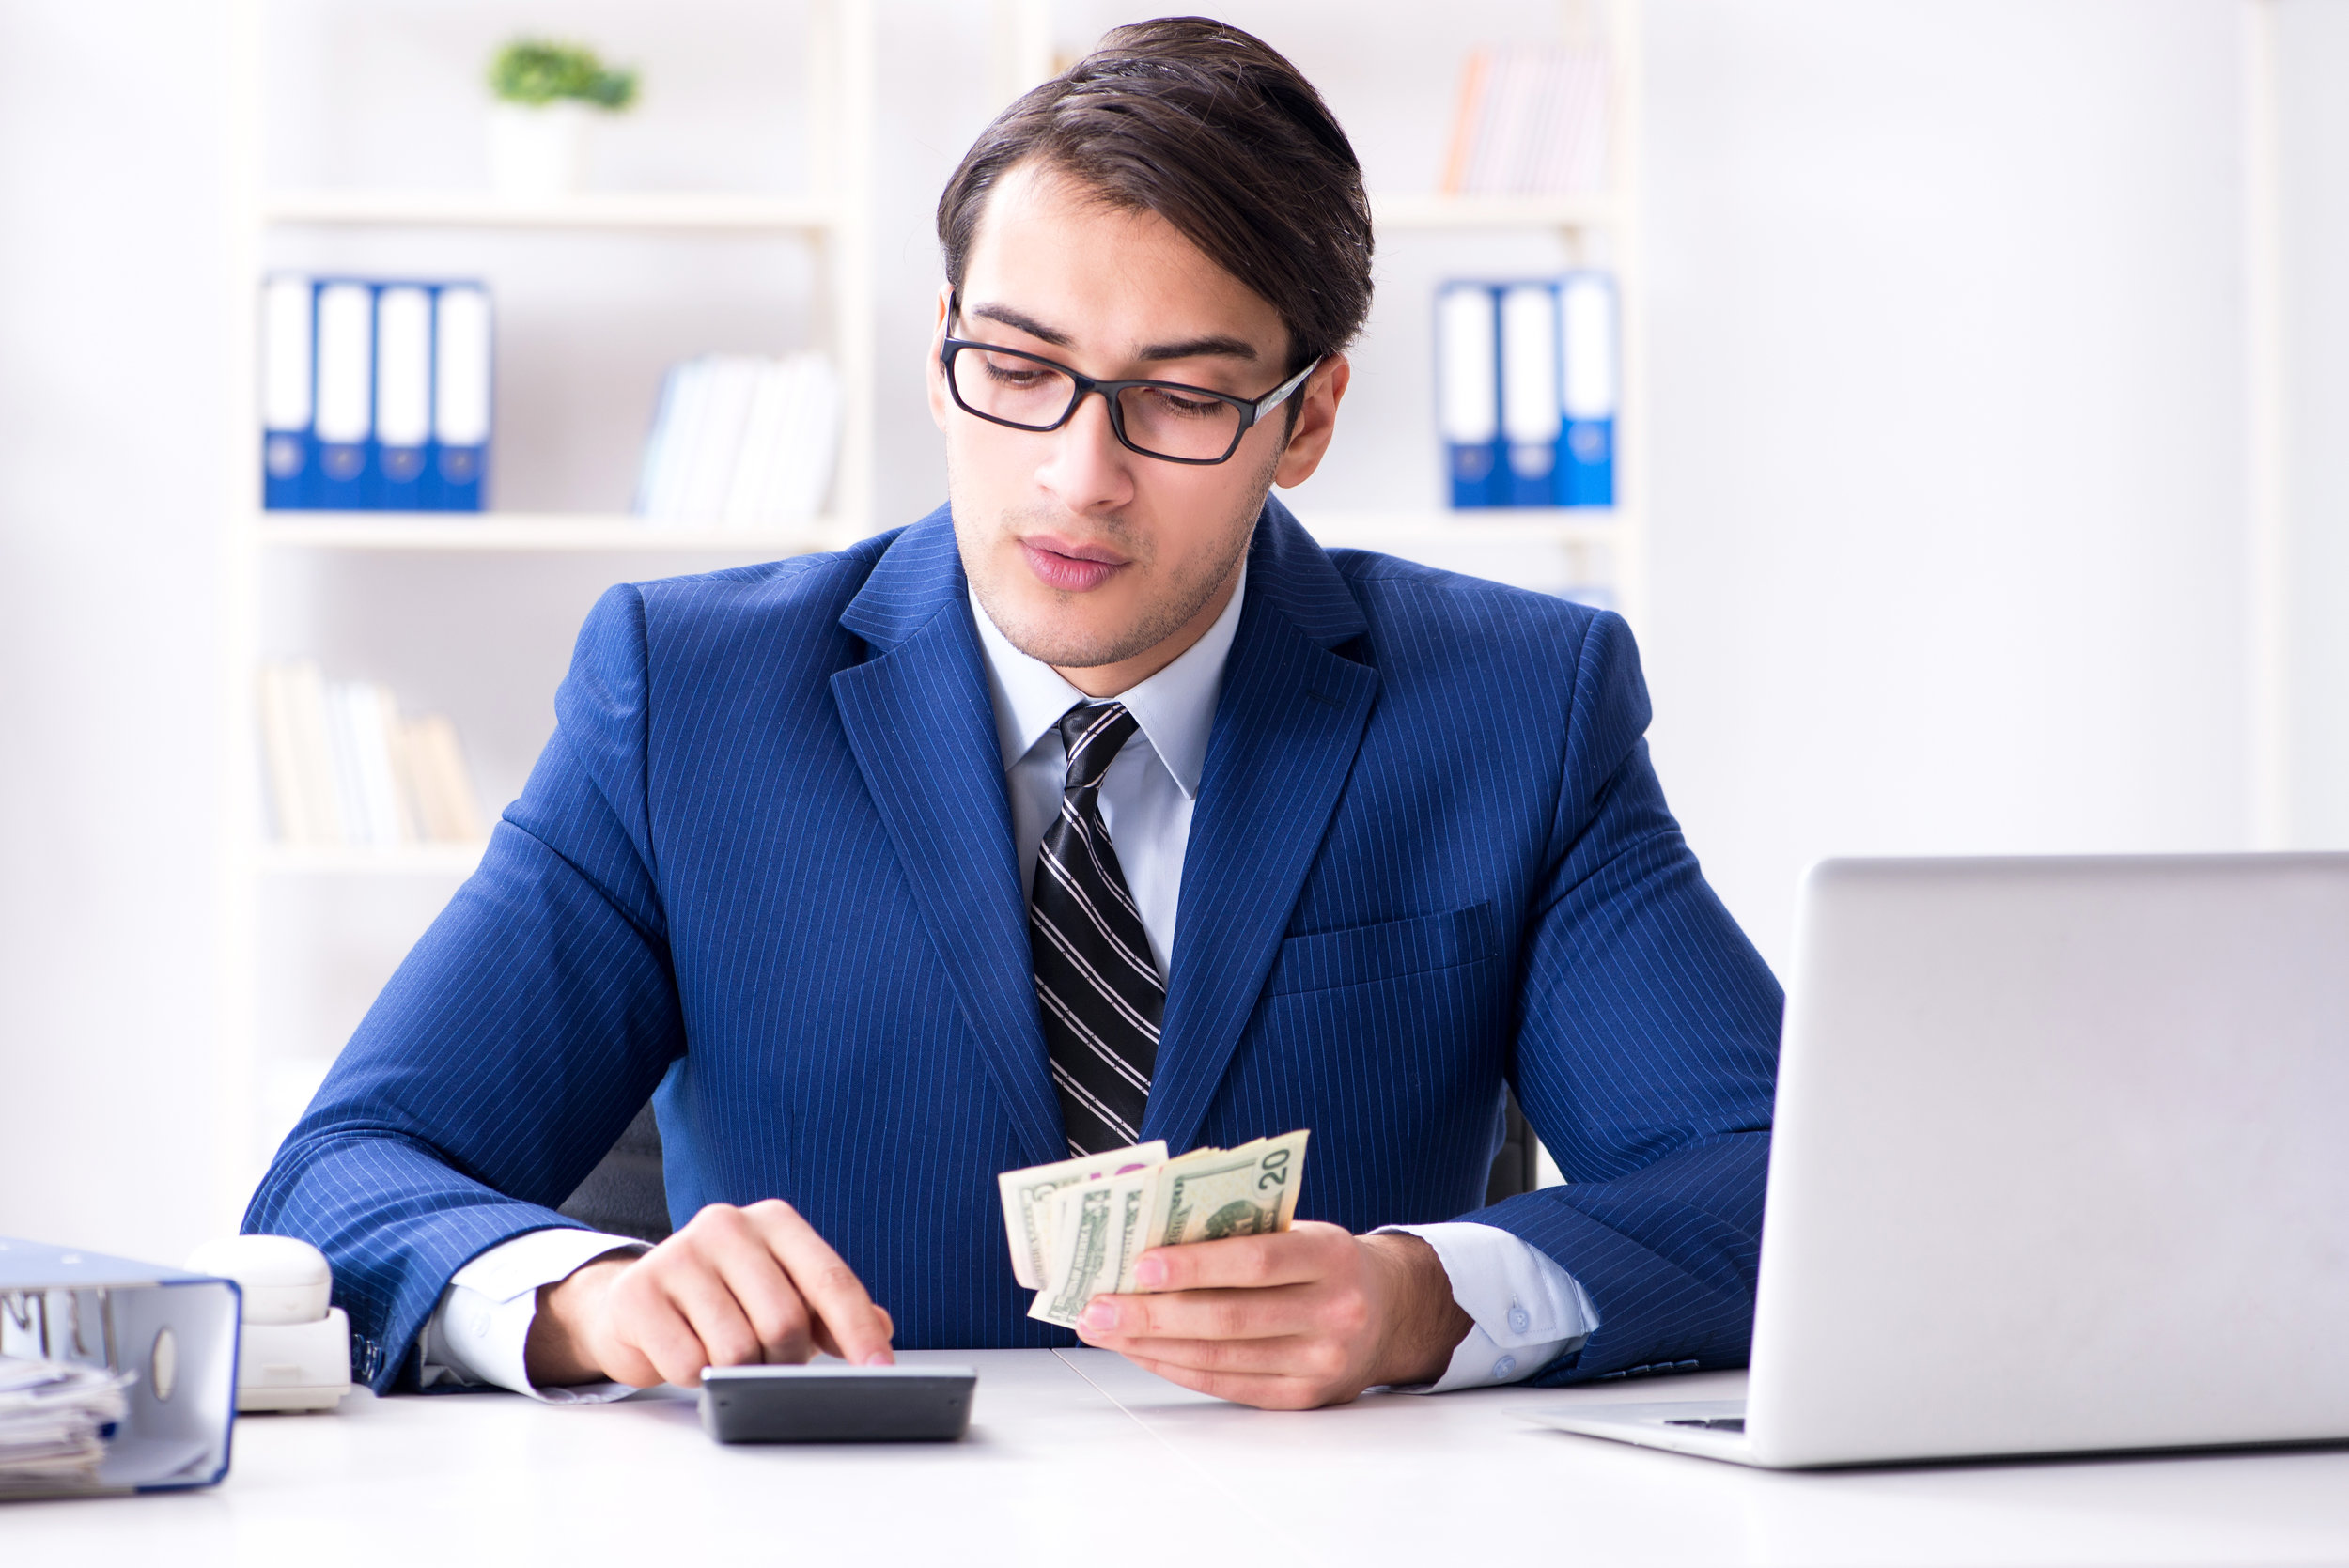 Canva - Accountant Calculating Dollars with Calculator in Office-1.jpg